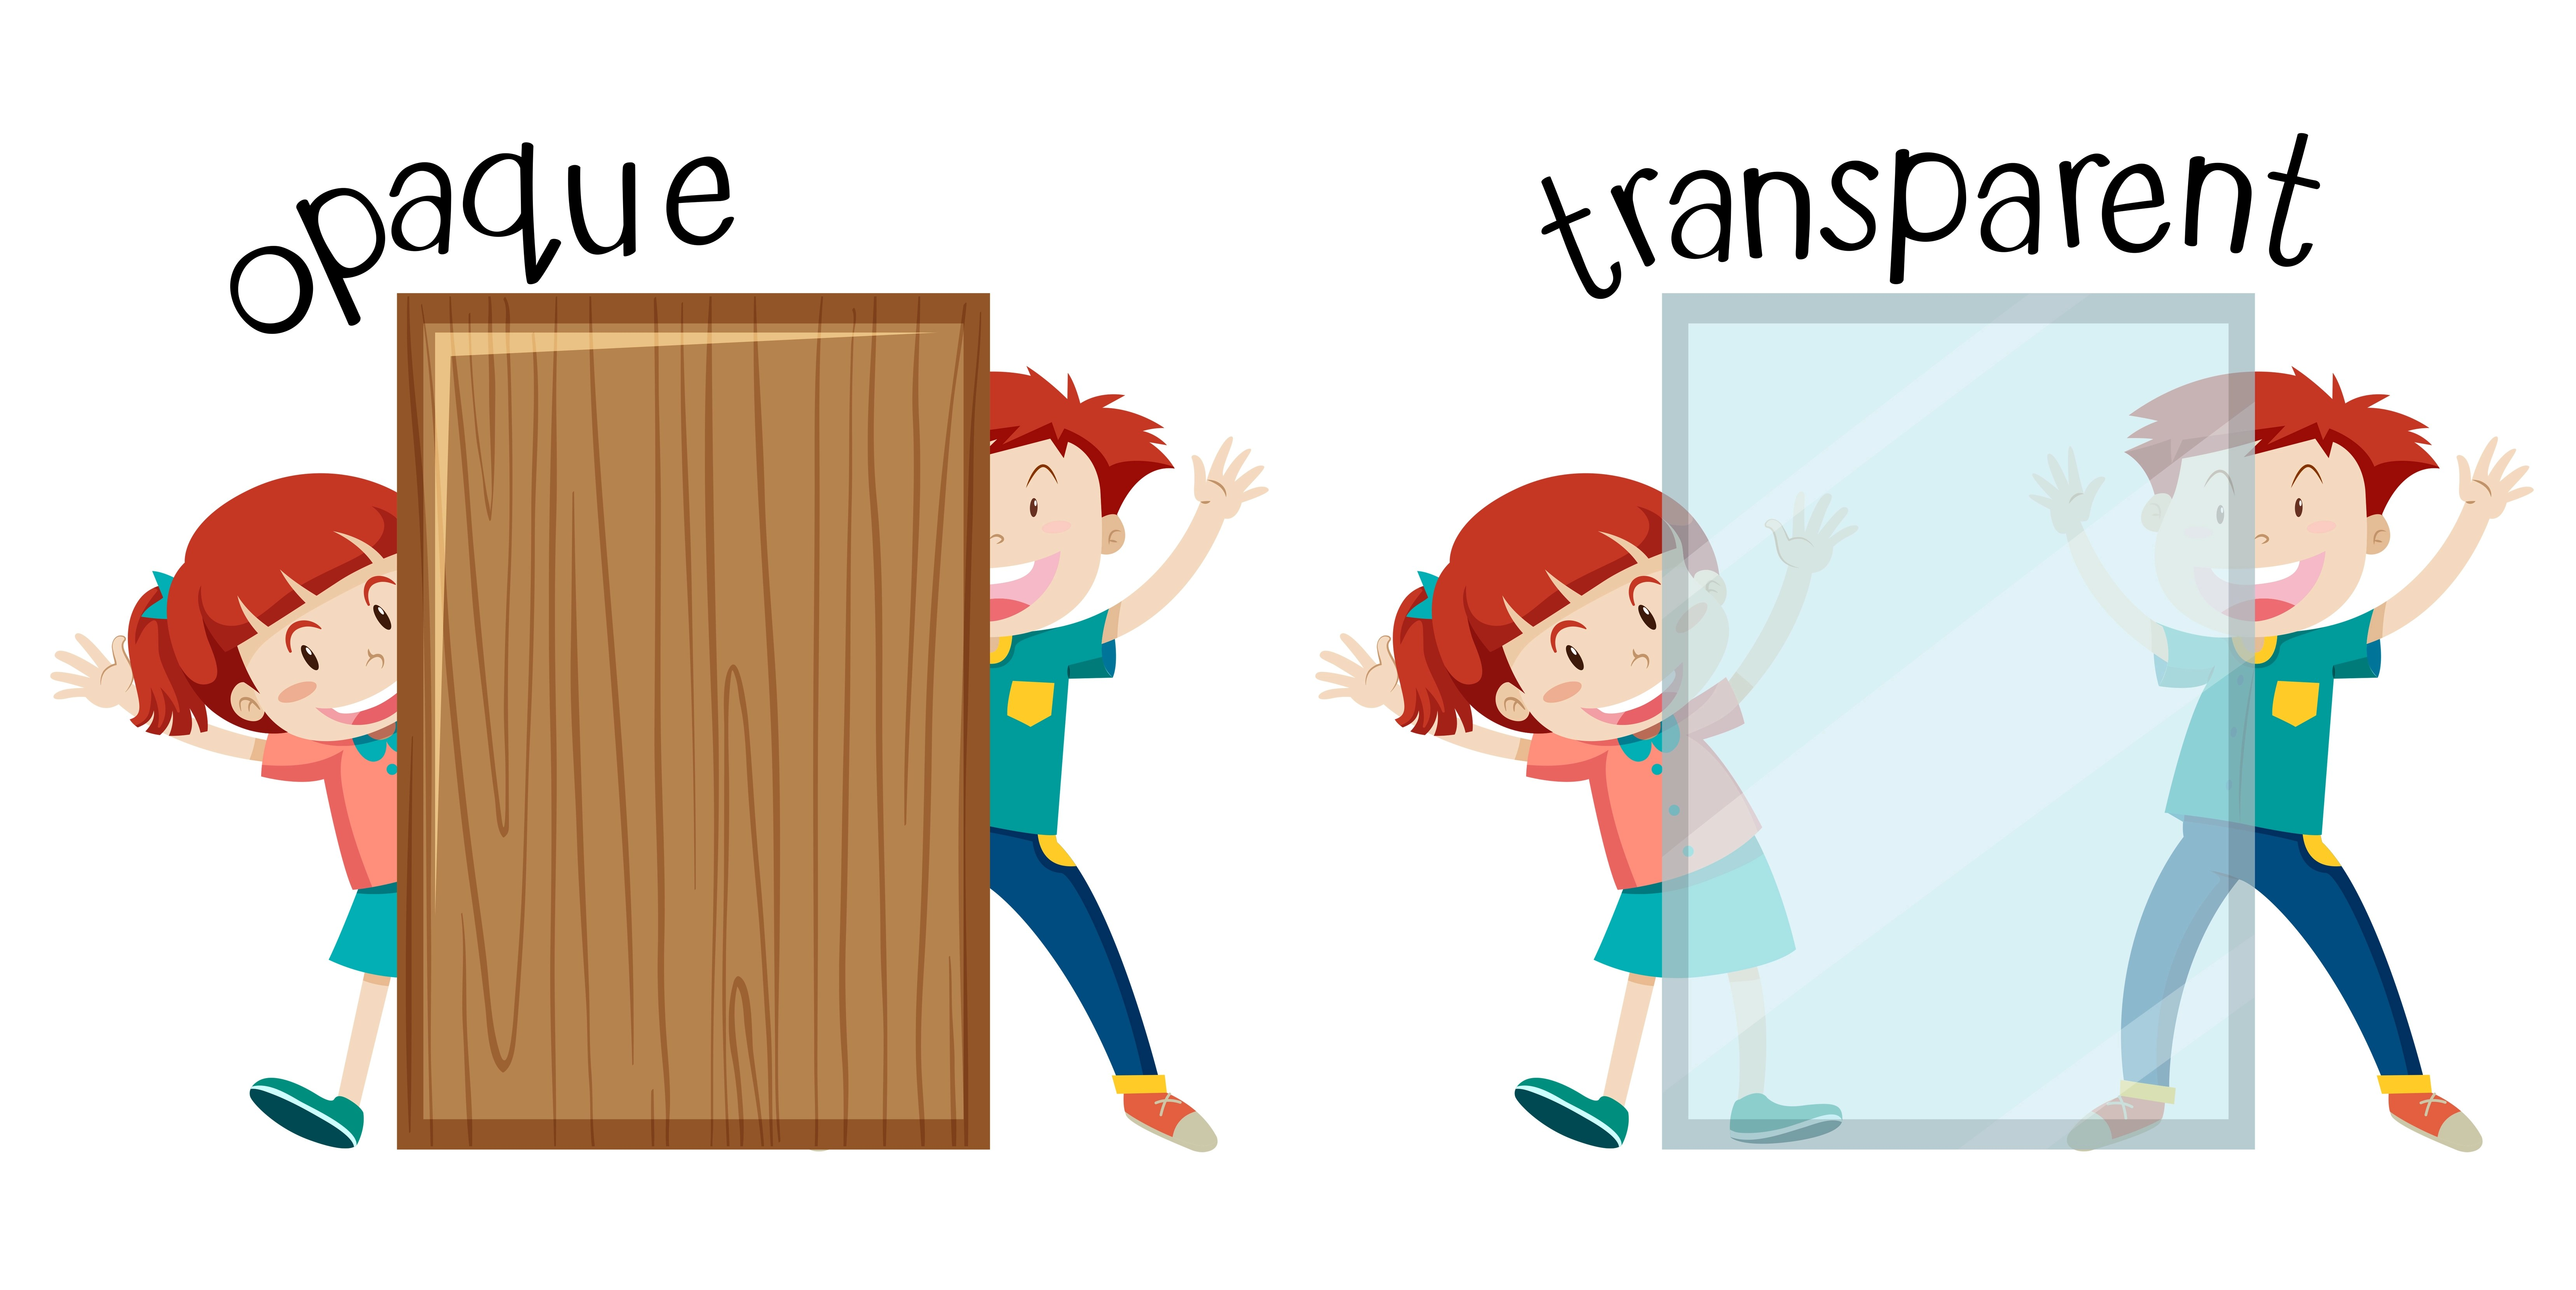 English Opposite Word Opaque And Transparent